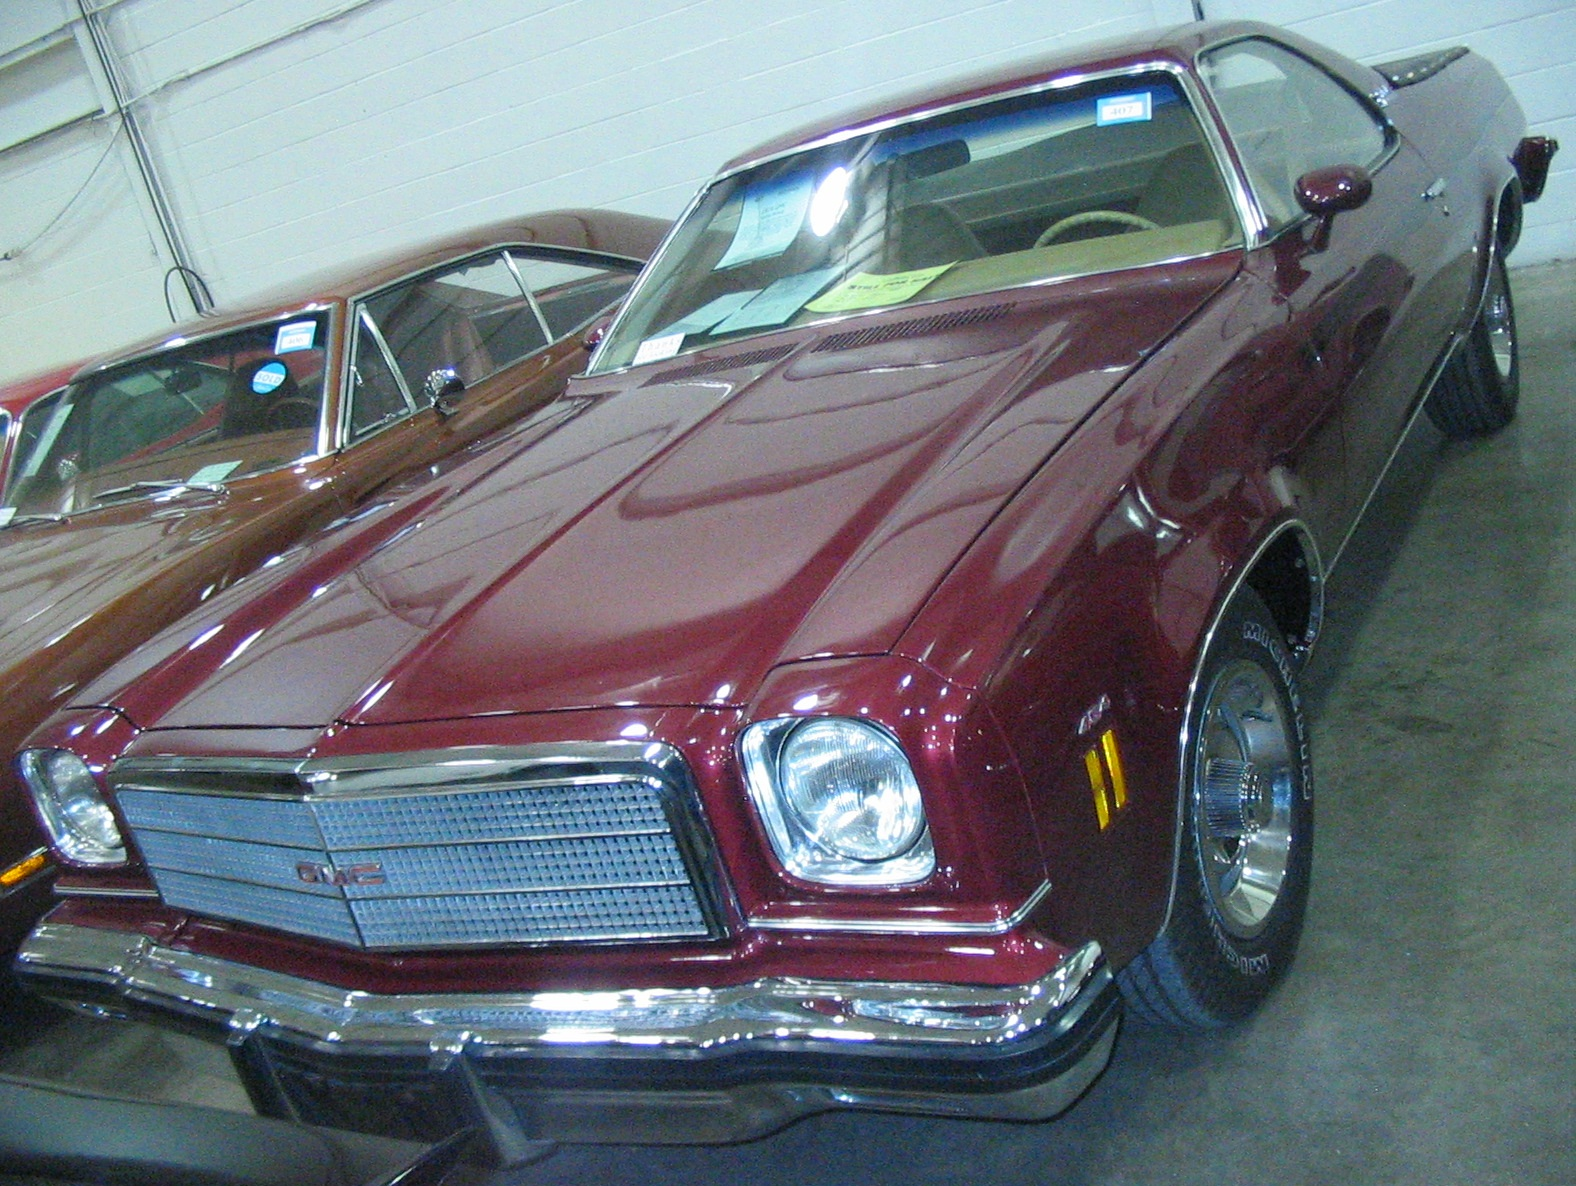 1970 El Camino Led Tail Lights Gmc Sprint Caballero Wikipedia